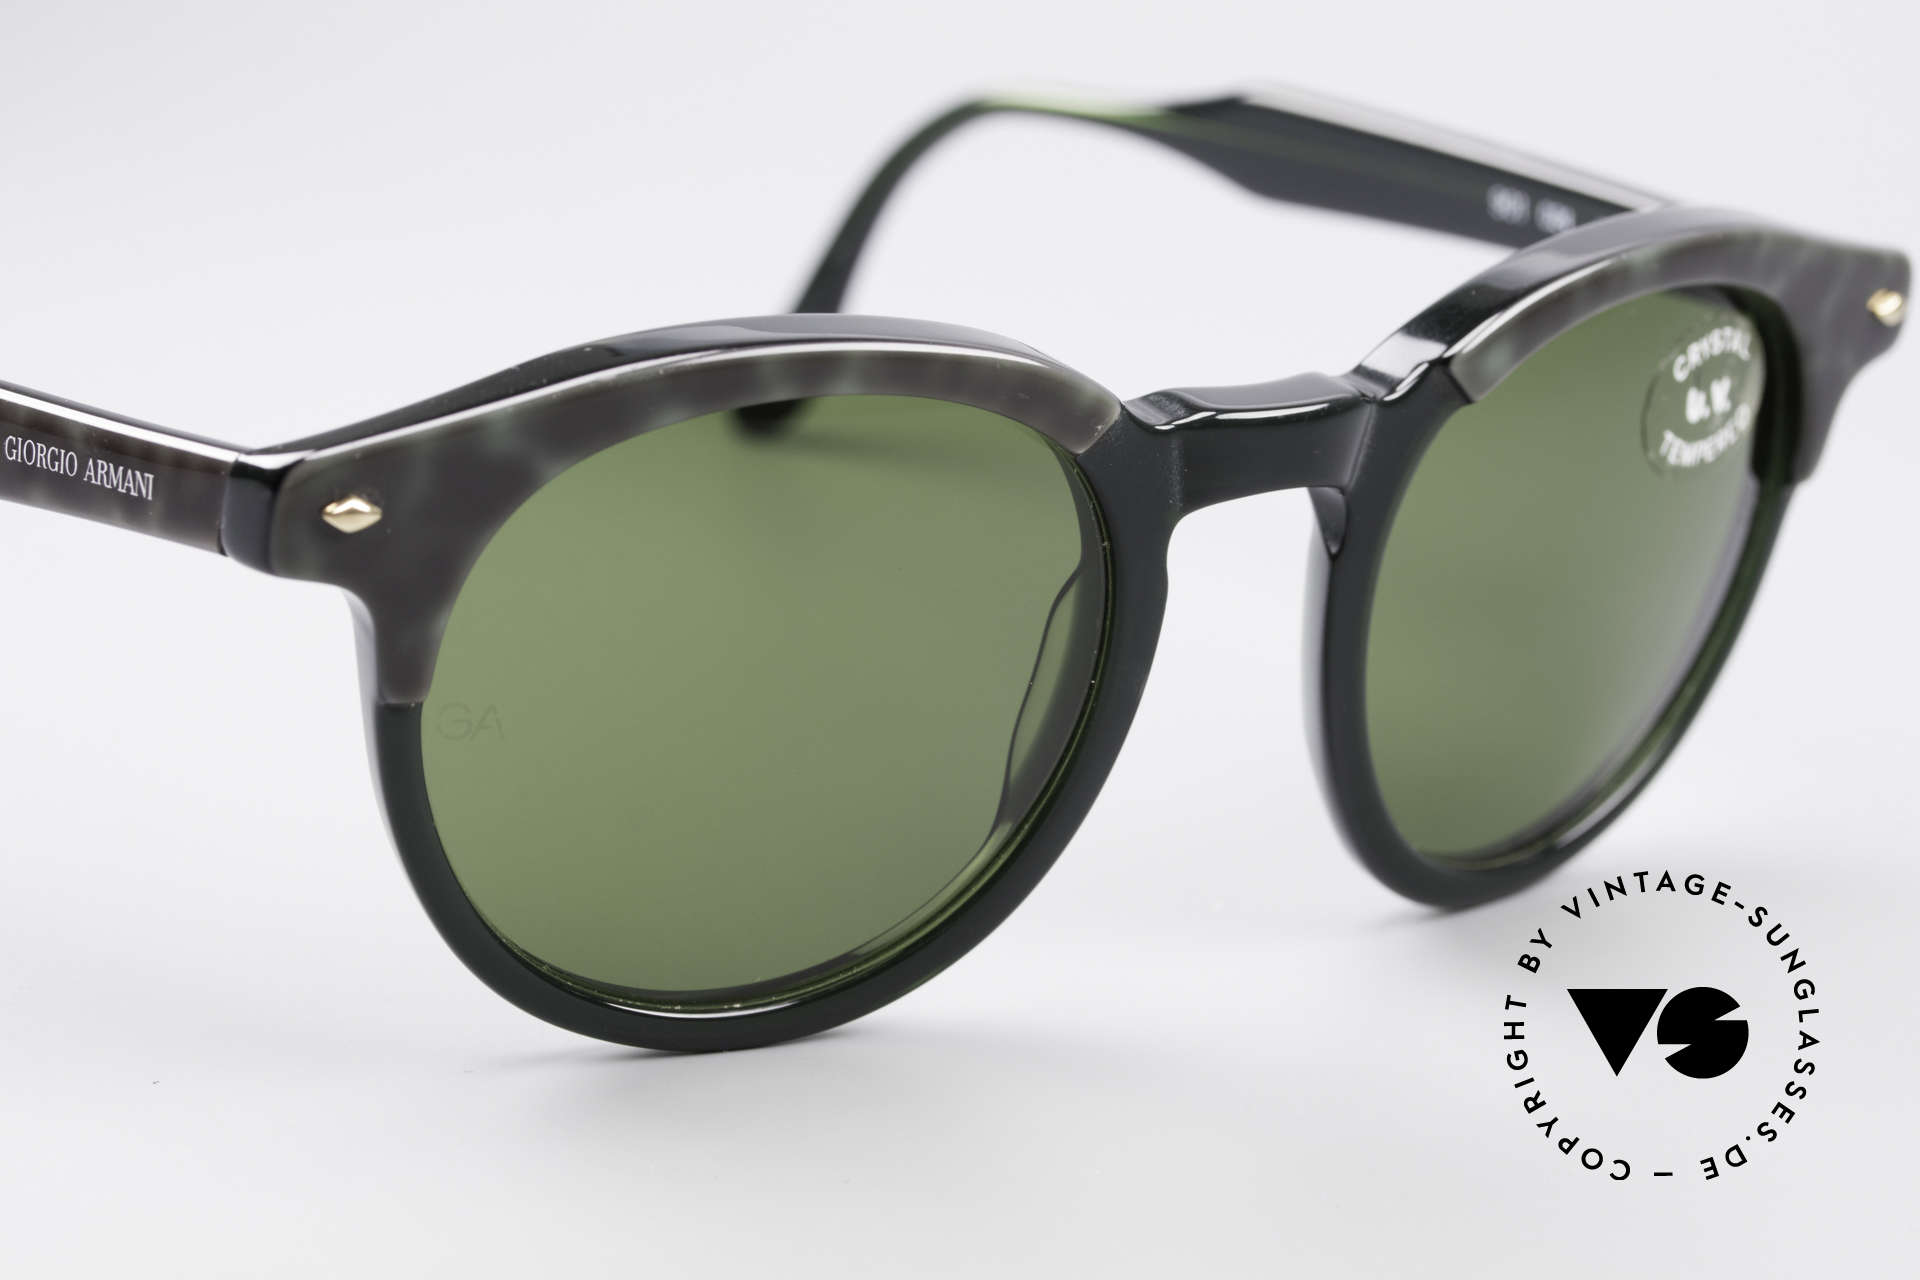 Giorgio Armani 901 Johnny Depp Sunglasses, never worn (like all our vintage Giorgio Armani shades), Made for Men